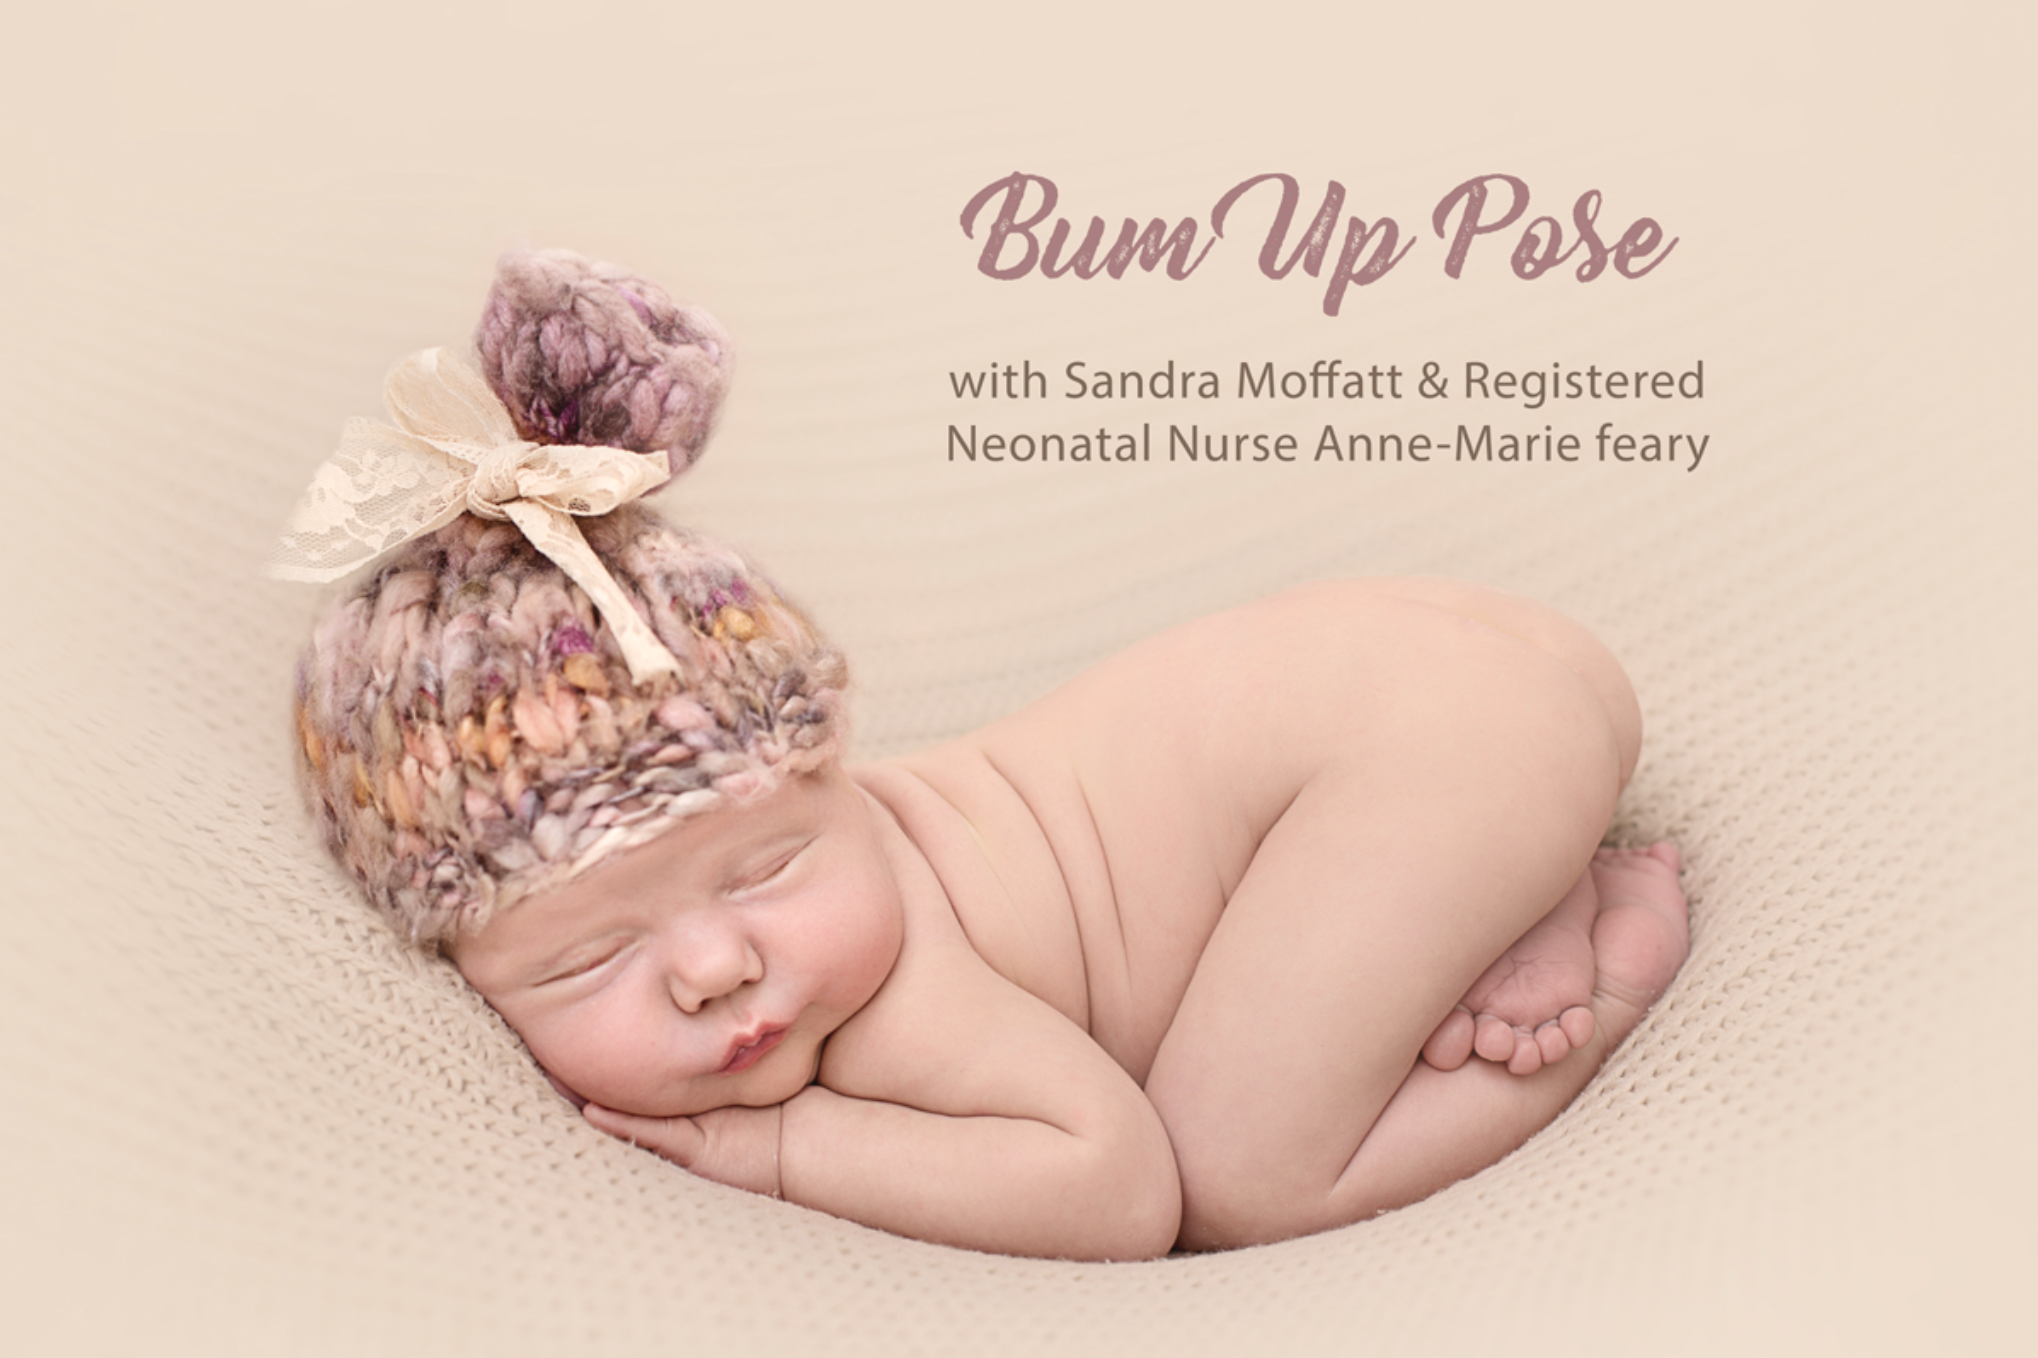 Free newborn photography posing video series with registered neonatal nurse bum up tooshi up pose